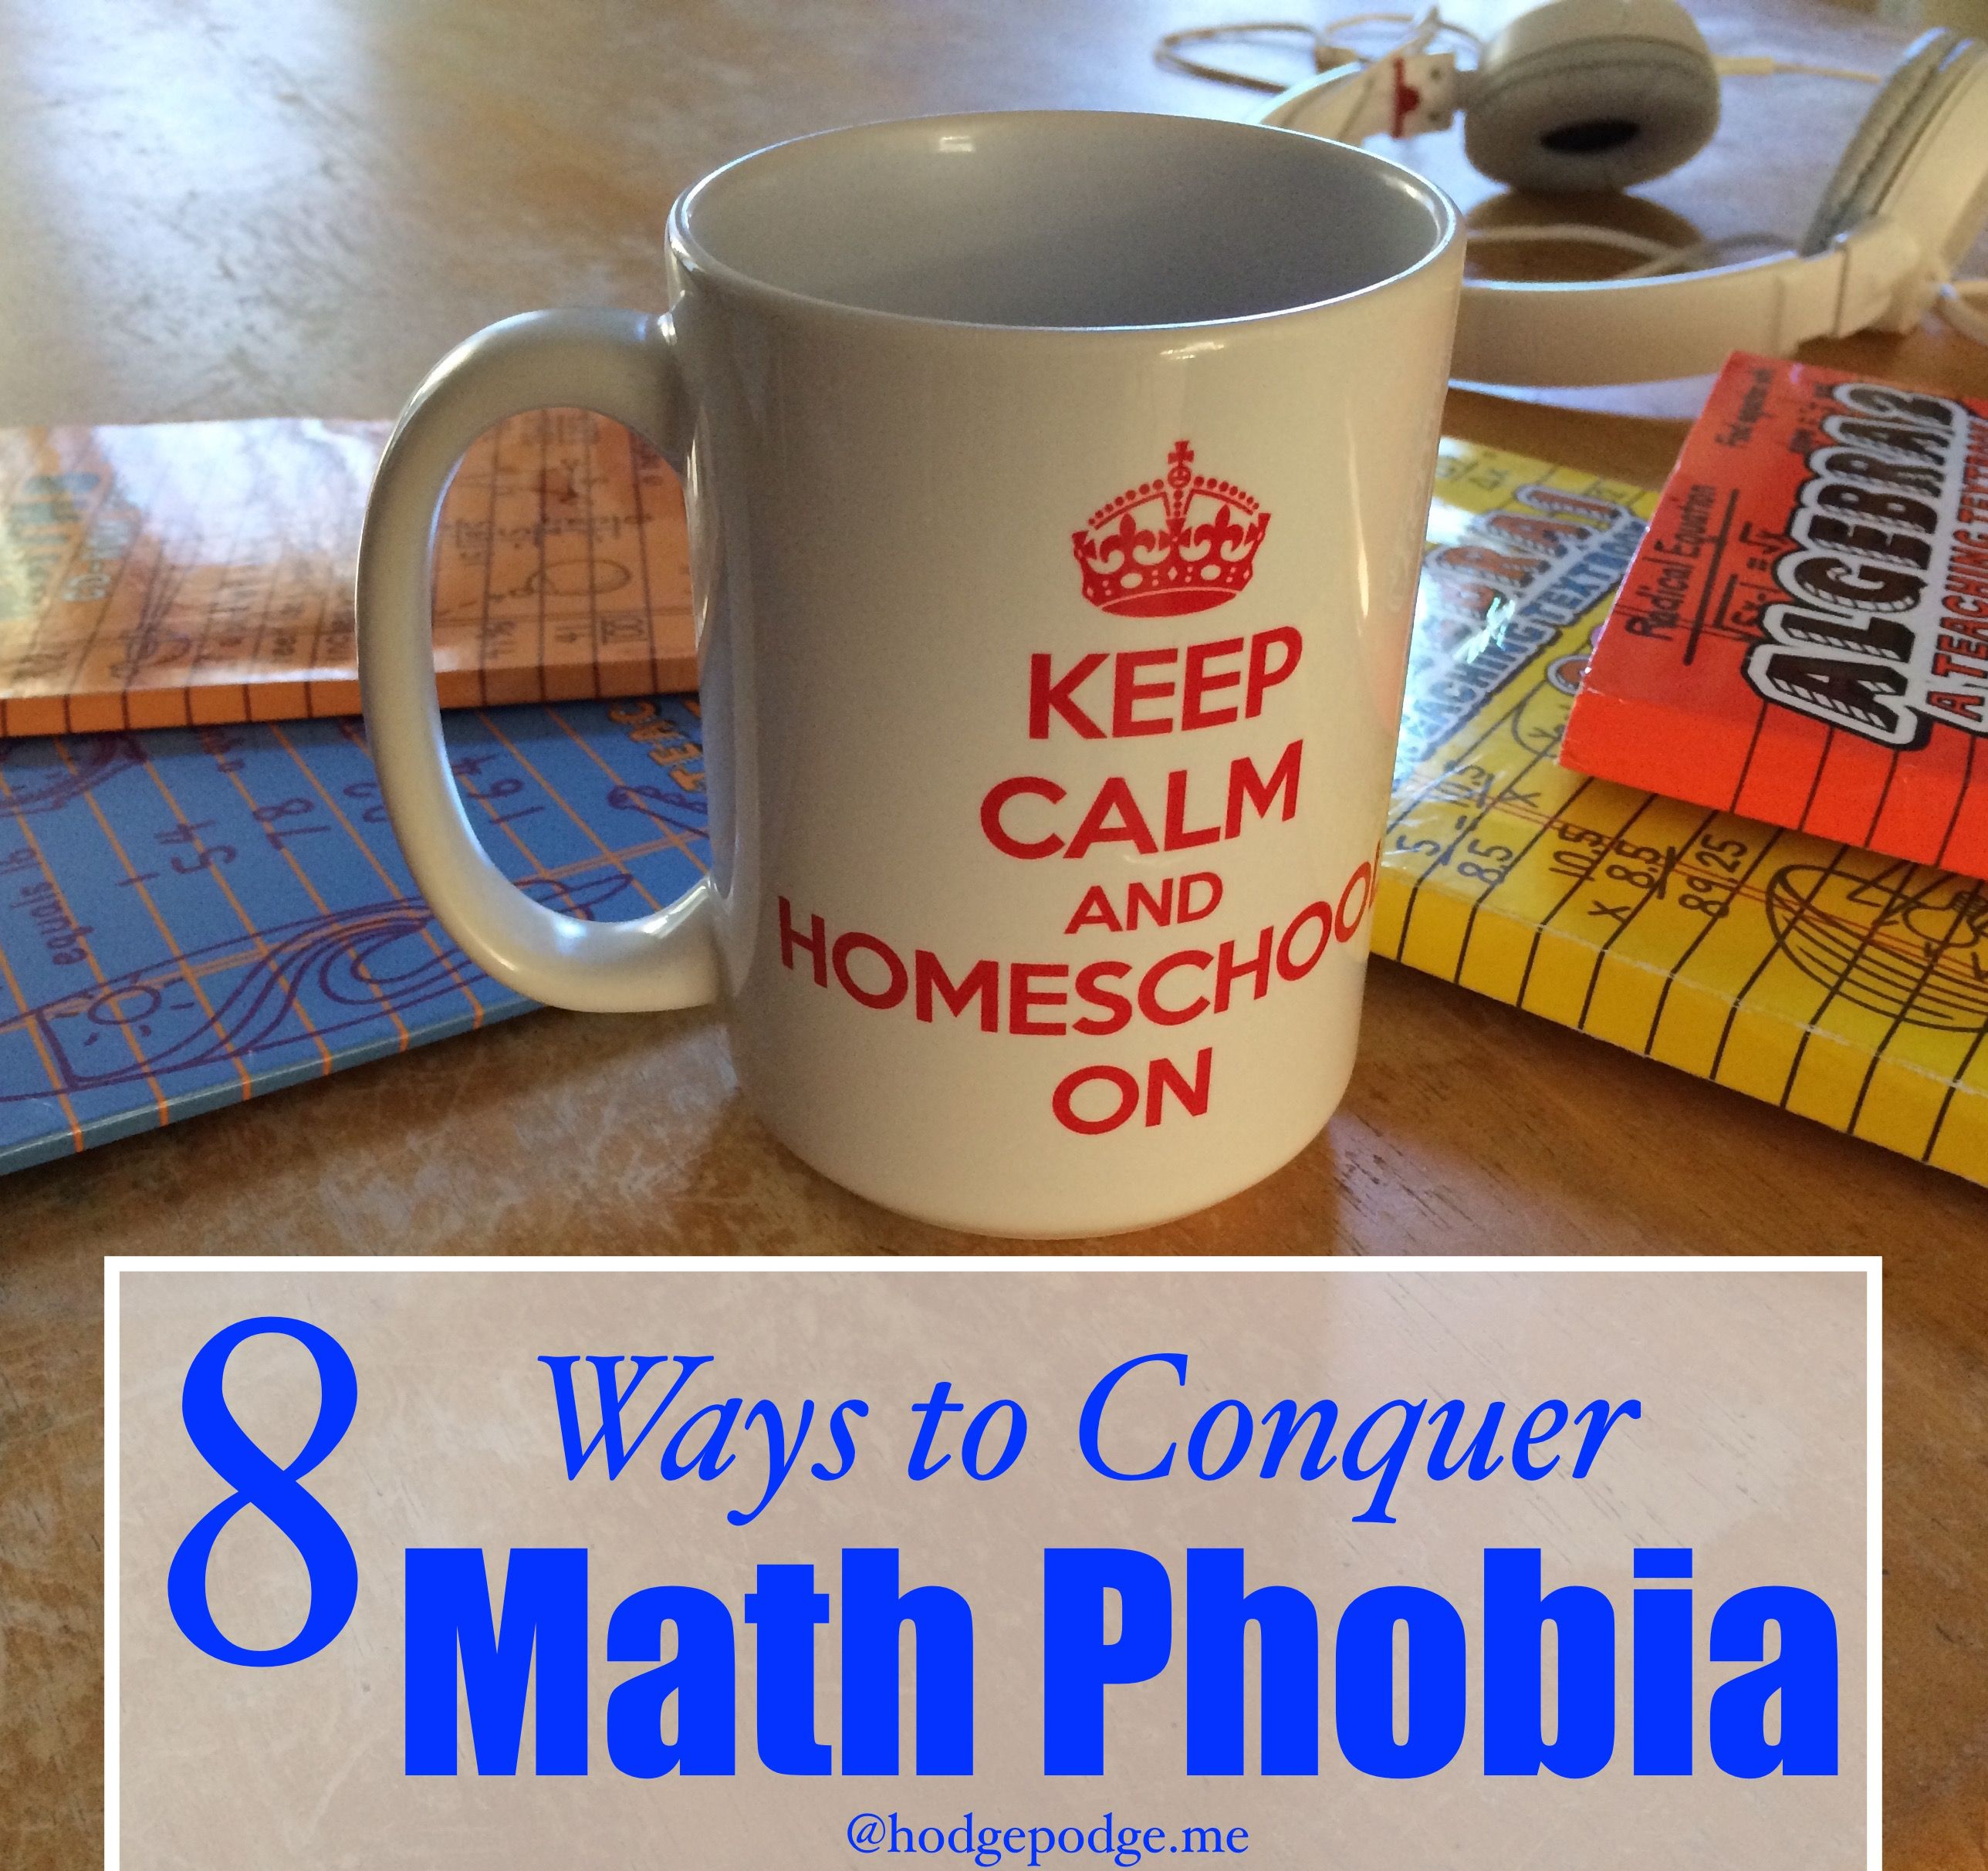 8 Ways To Conquer Math Phobia